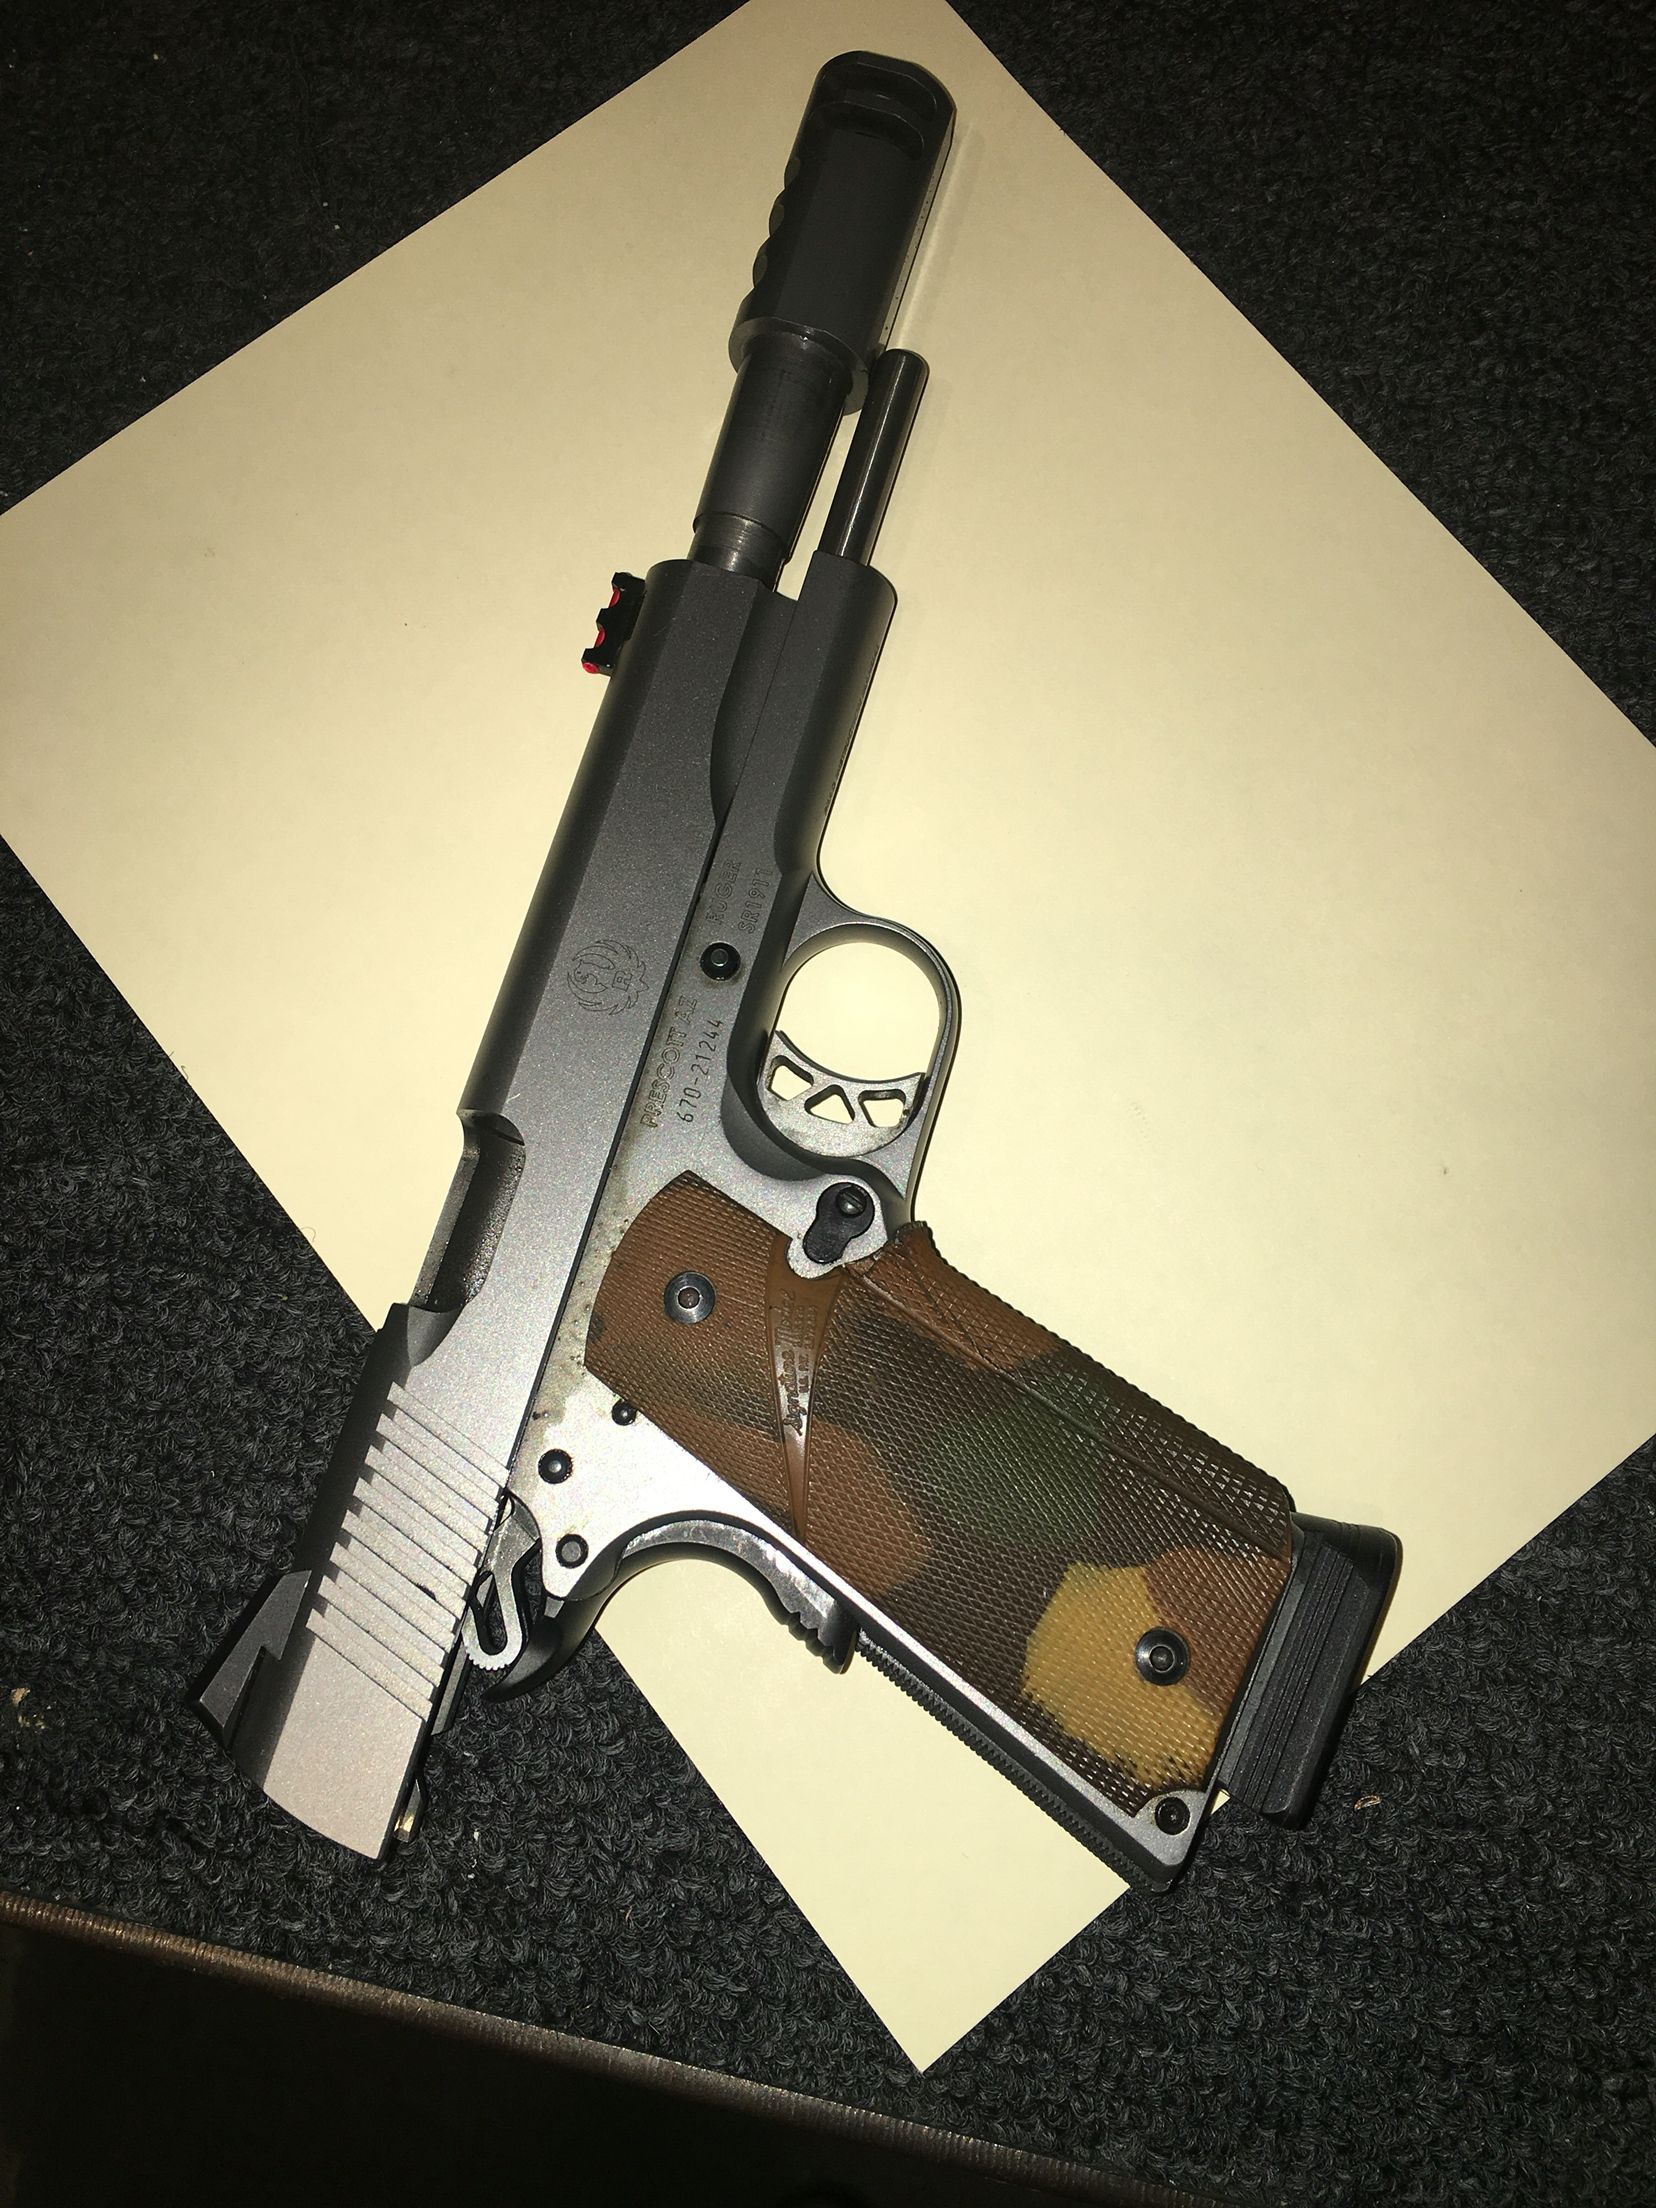 Pin by RAE Industries on Ruger | Ruger lc9, Hand guns, You